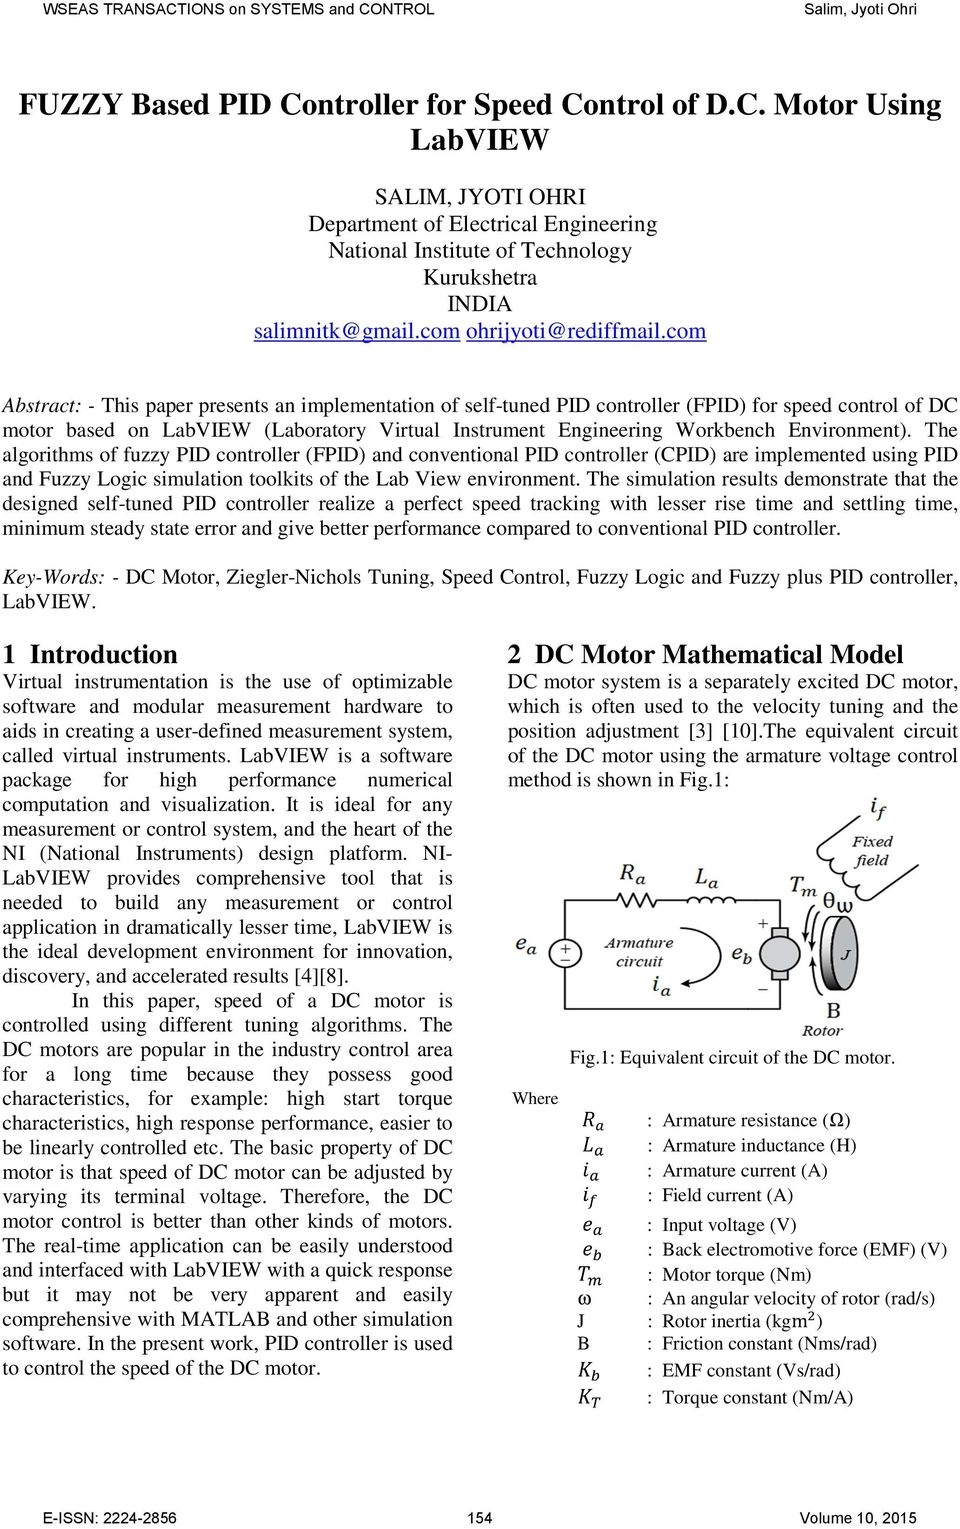 com Abstract: - This paper presents an implementation of self-tuned PID controller (FPID) for speed control of DC motor based on LabVIEW (Laboratory Virtual Instrument Engineering Workbench